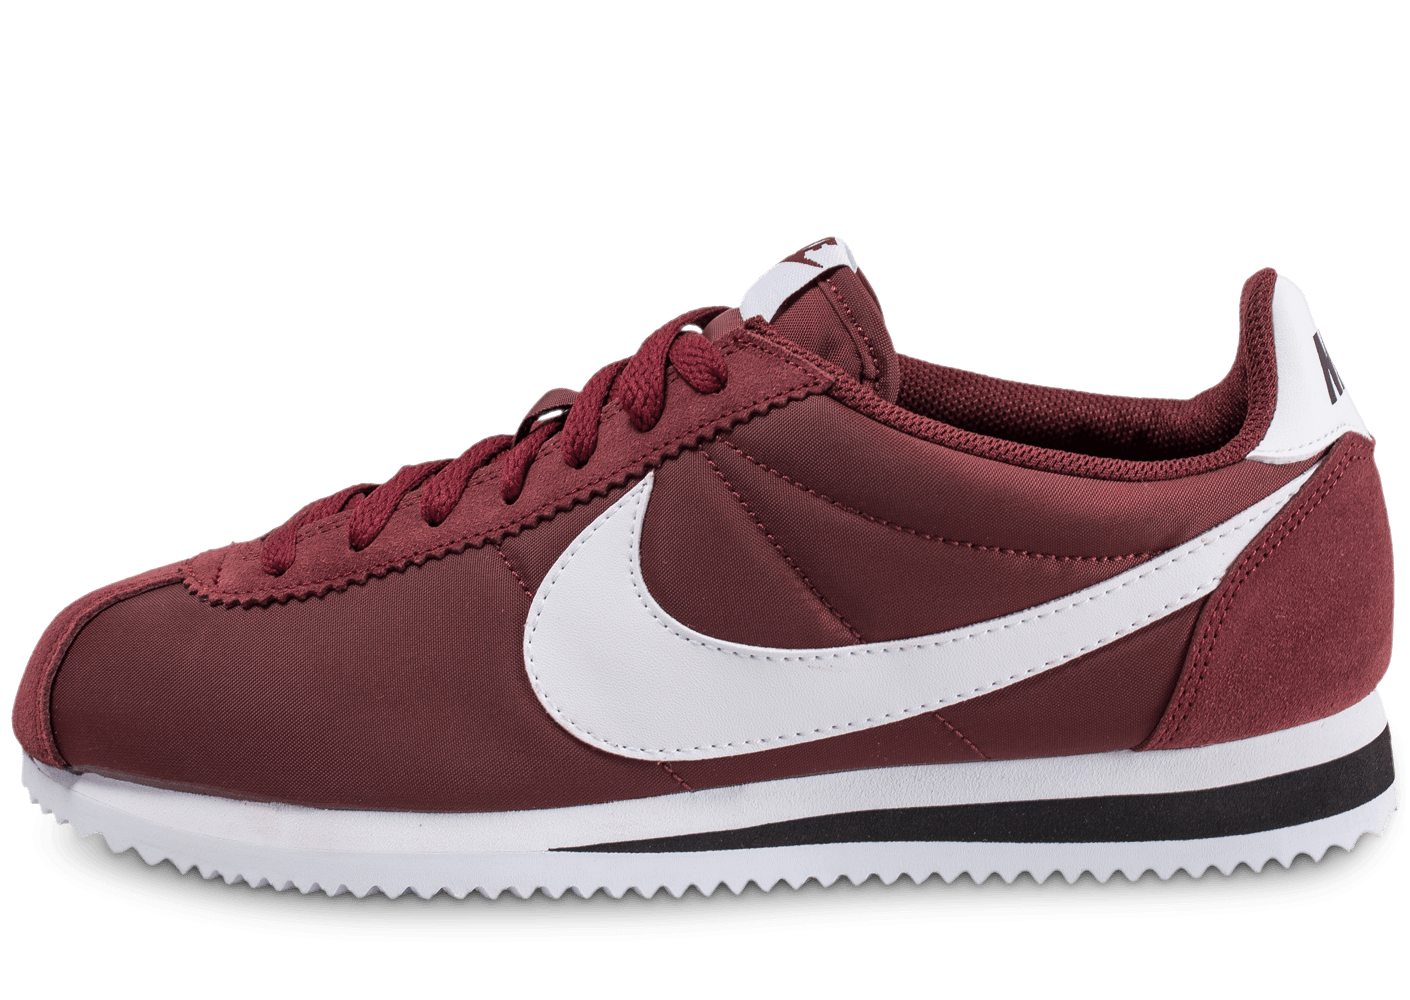 nike cortez nylon bordeaux chaussures homme chausport. Black Bedroom Furniture Sets. Home Design Ideas